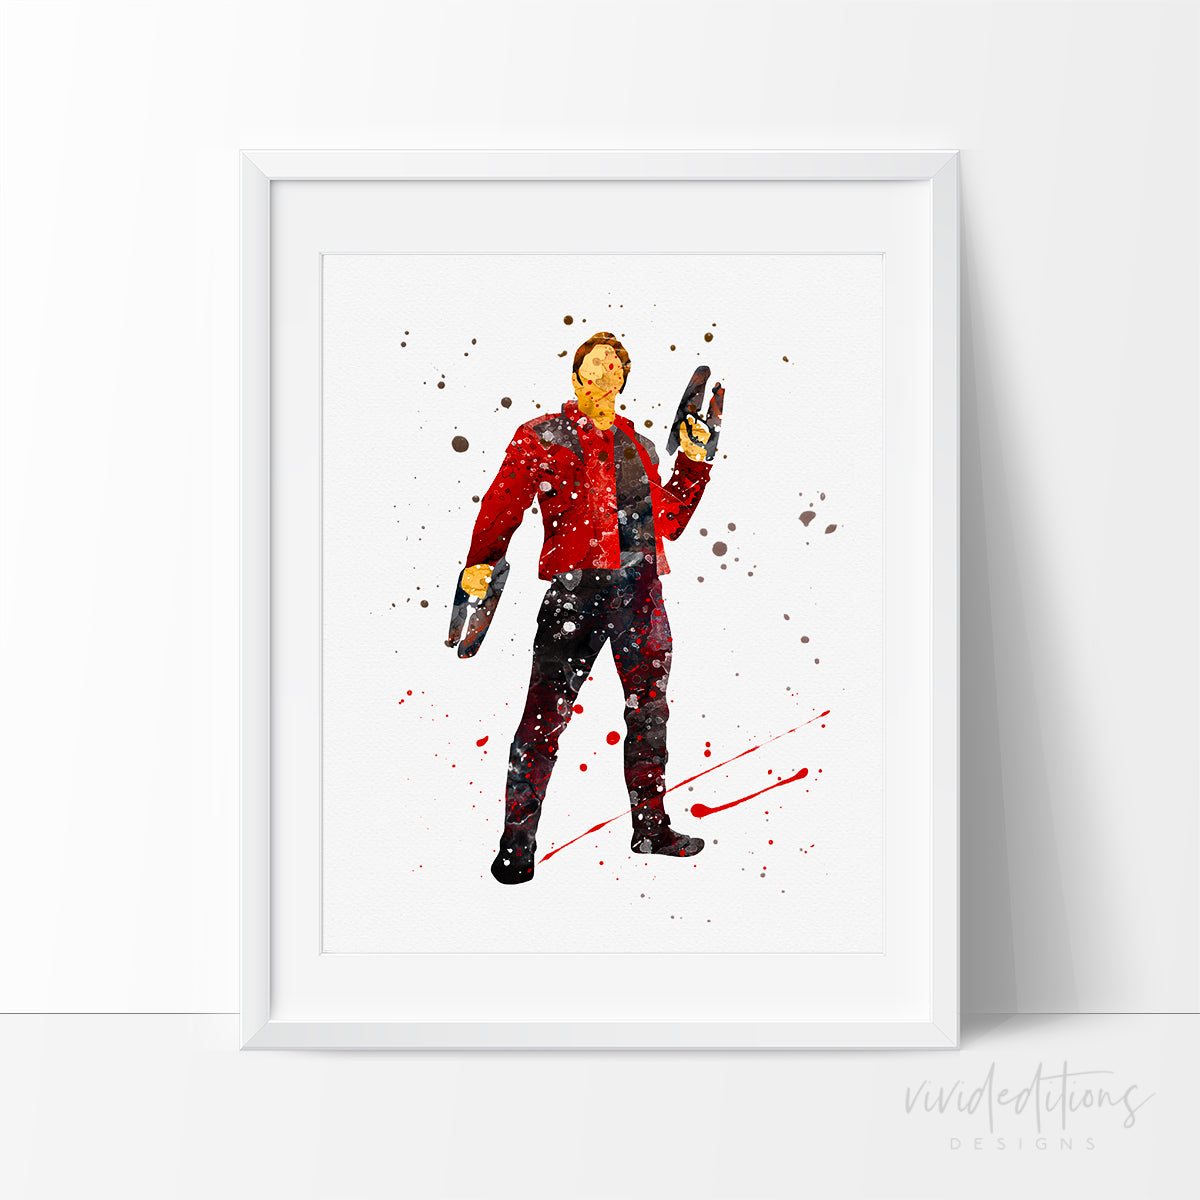 Guardians of the Galaxy Peter Quill Watercolor Art Print Art Print - VIVIDEDITIONS